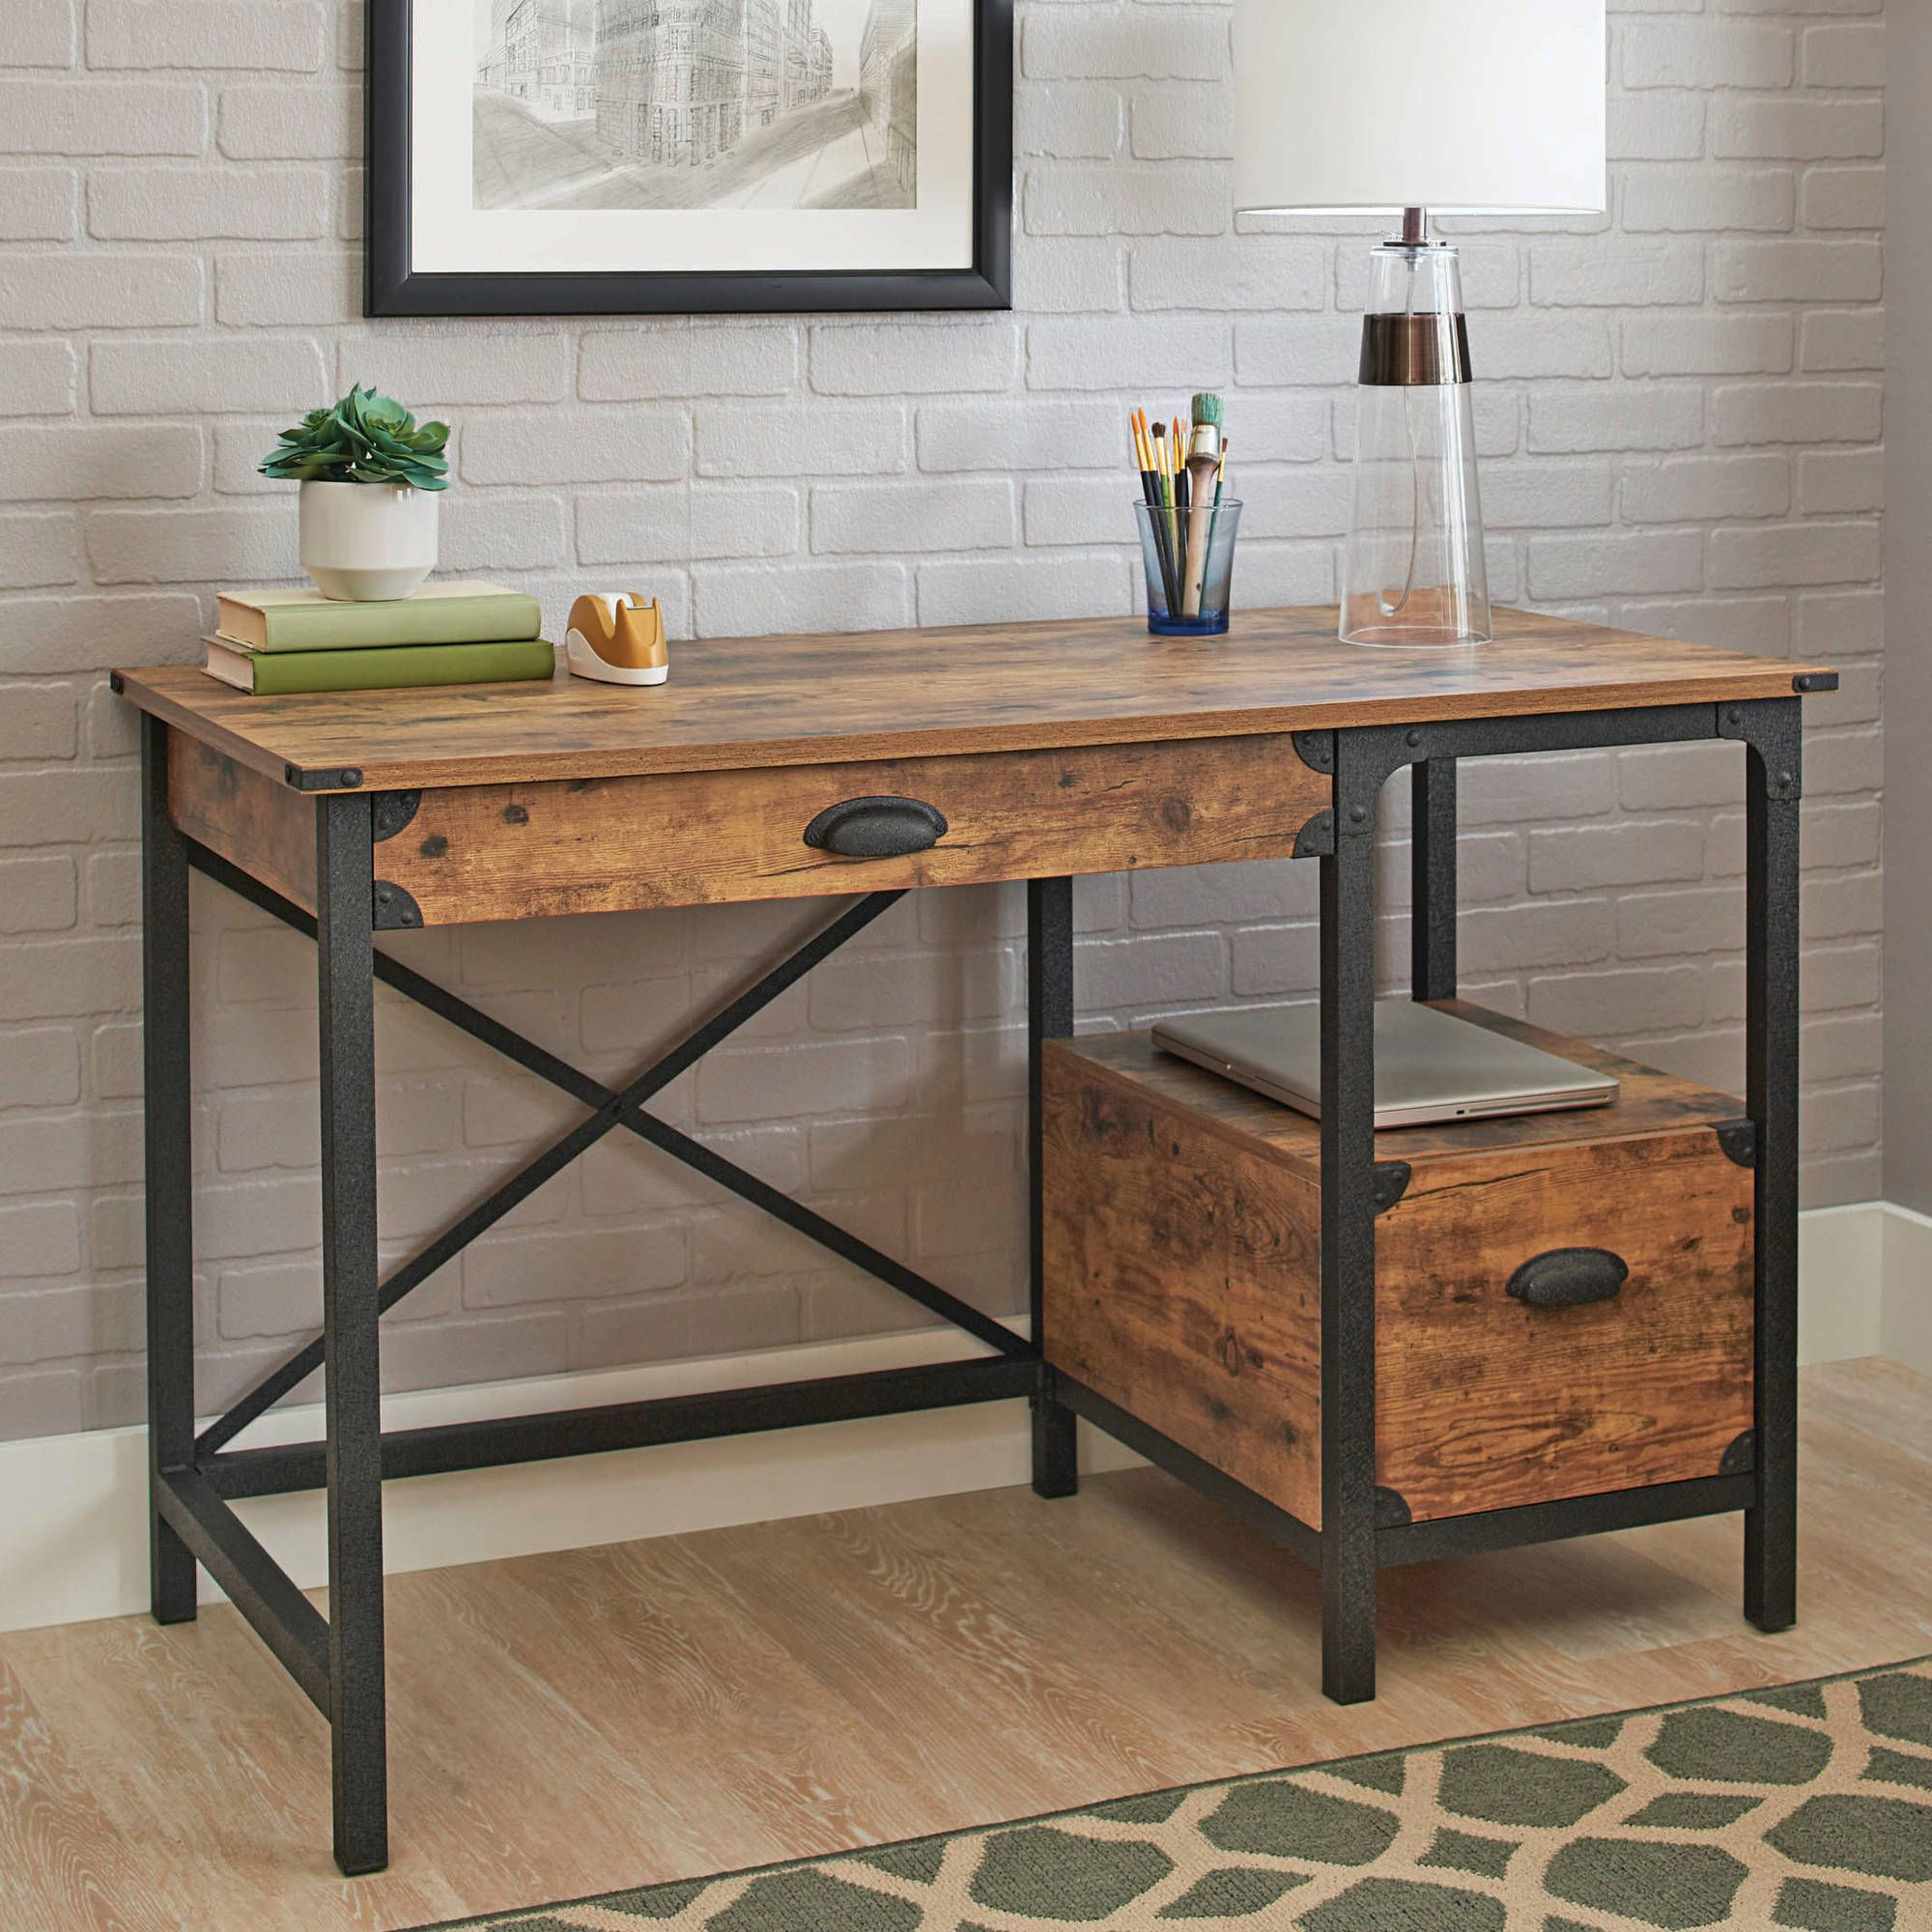 Computer Table Walmart Better Homes And Gardens Rustic Country